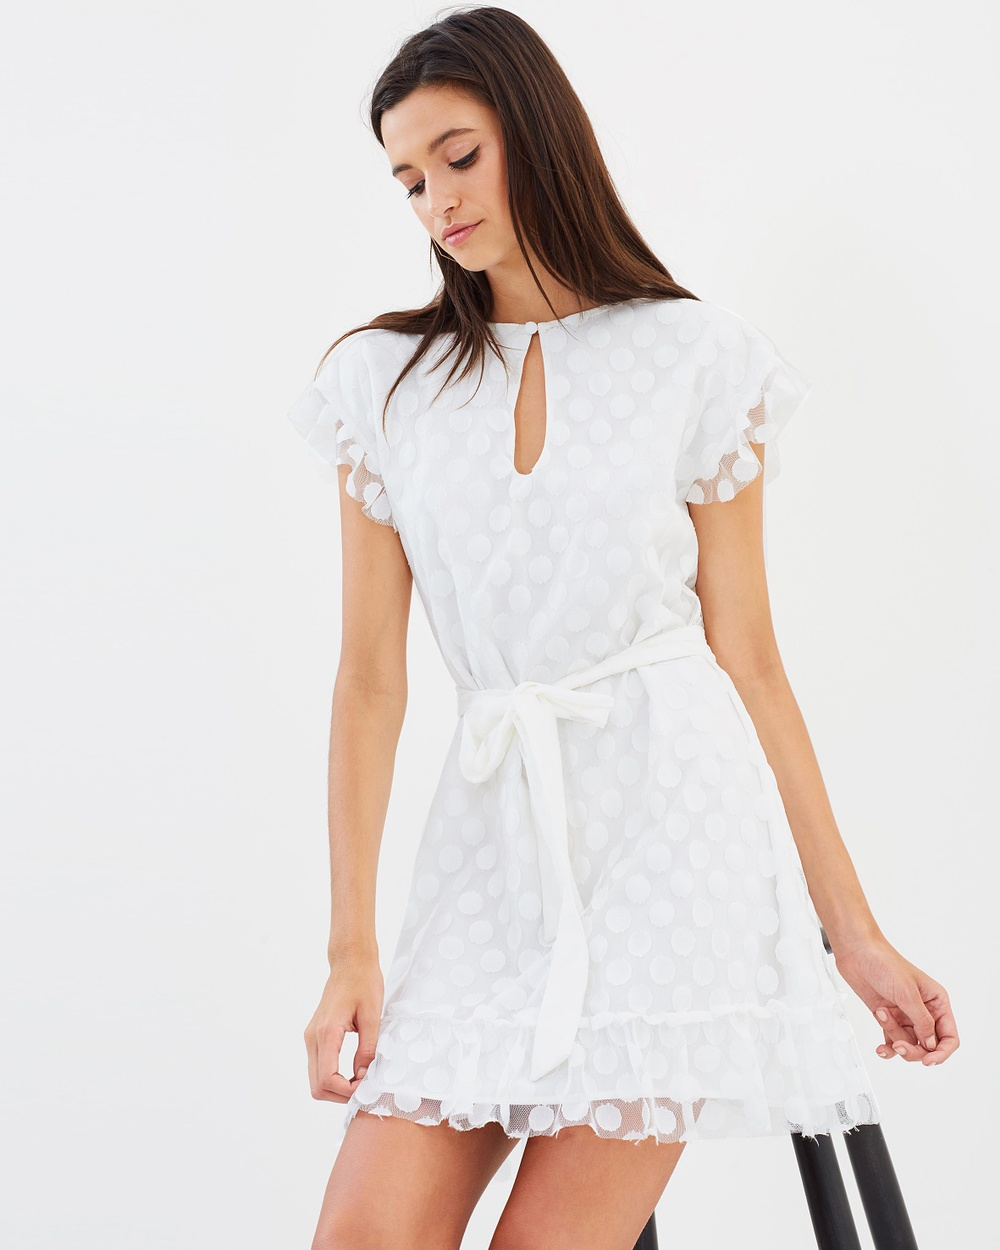 Dazie Elea Mesh Spot Keyhole Frill Dress Dresses White Elea Mesh Spot Keyhole Frill Dress